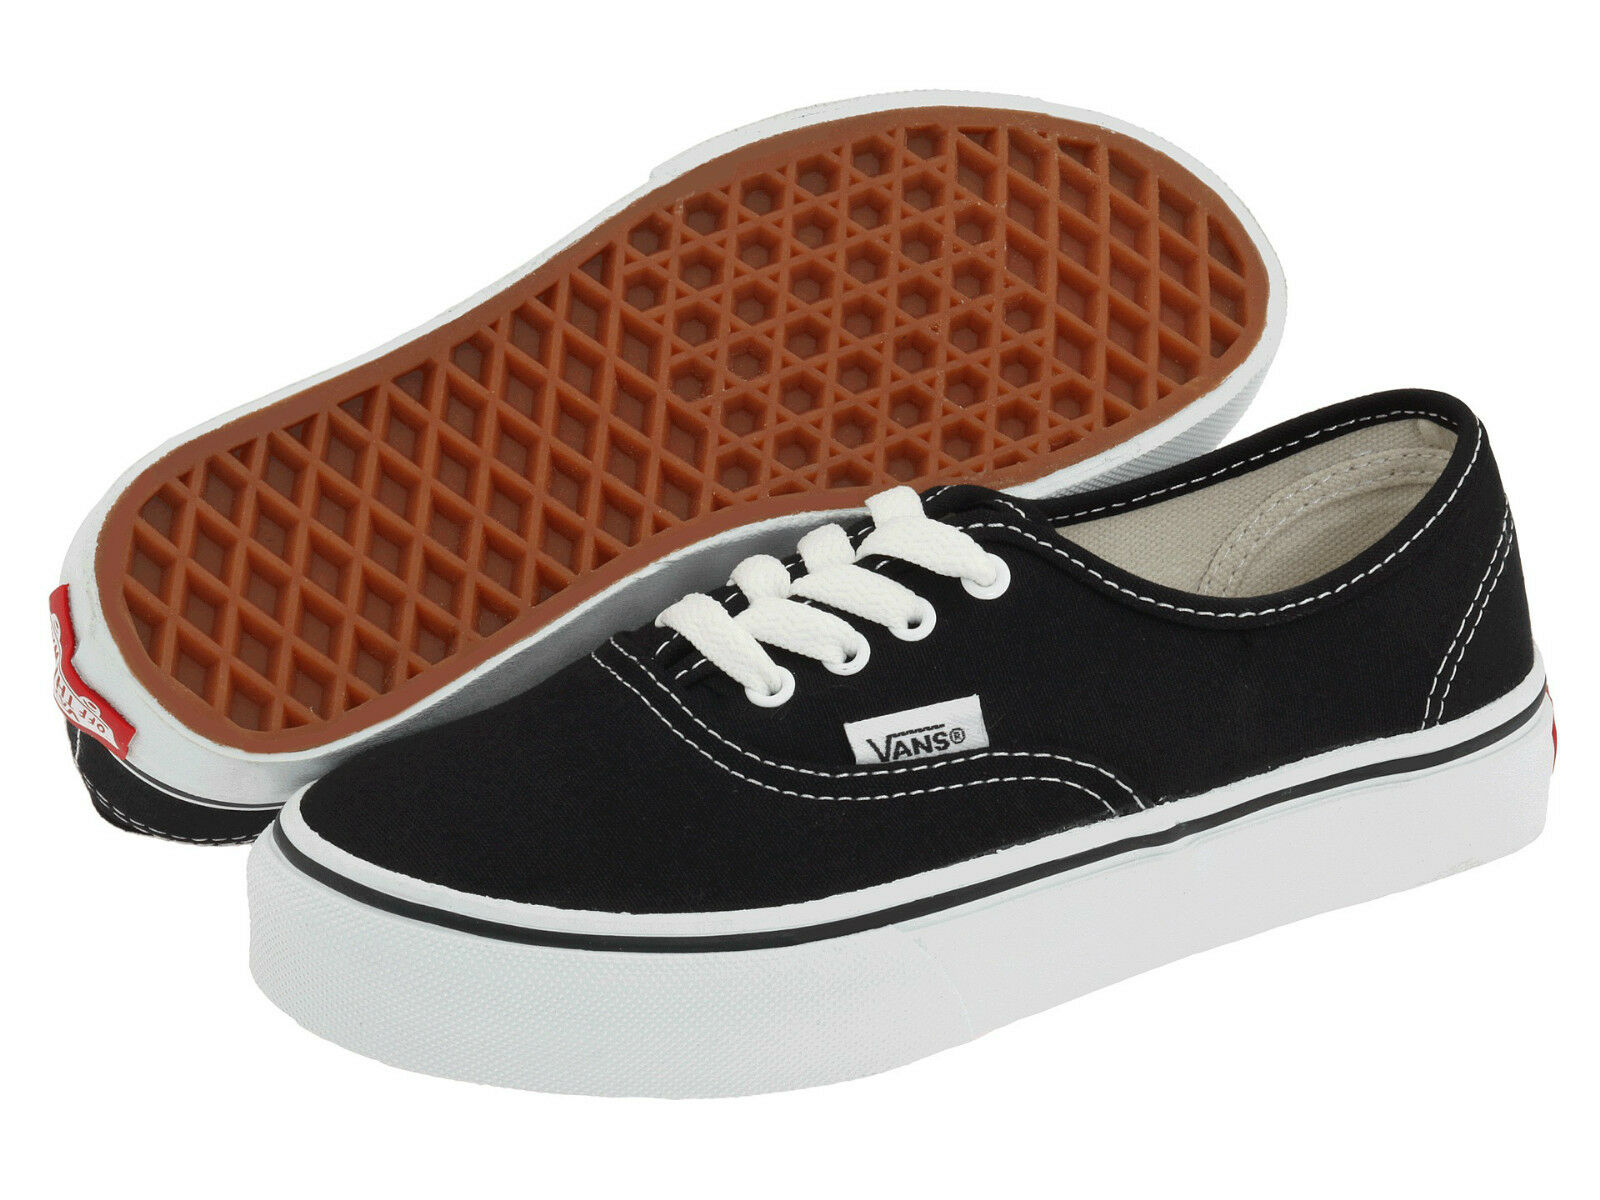 c4ebeadcae187b VANS AUTHENTIC CLASSIC CANVAS Kids Boys Girls Skate School Shoes BLACK  WHITE NEW 1 of 6 ...